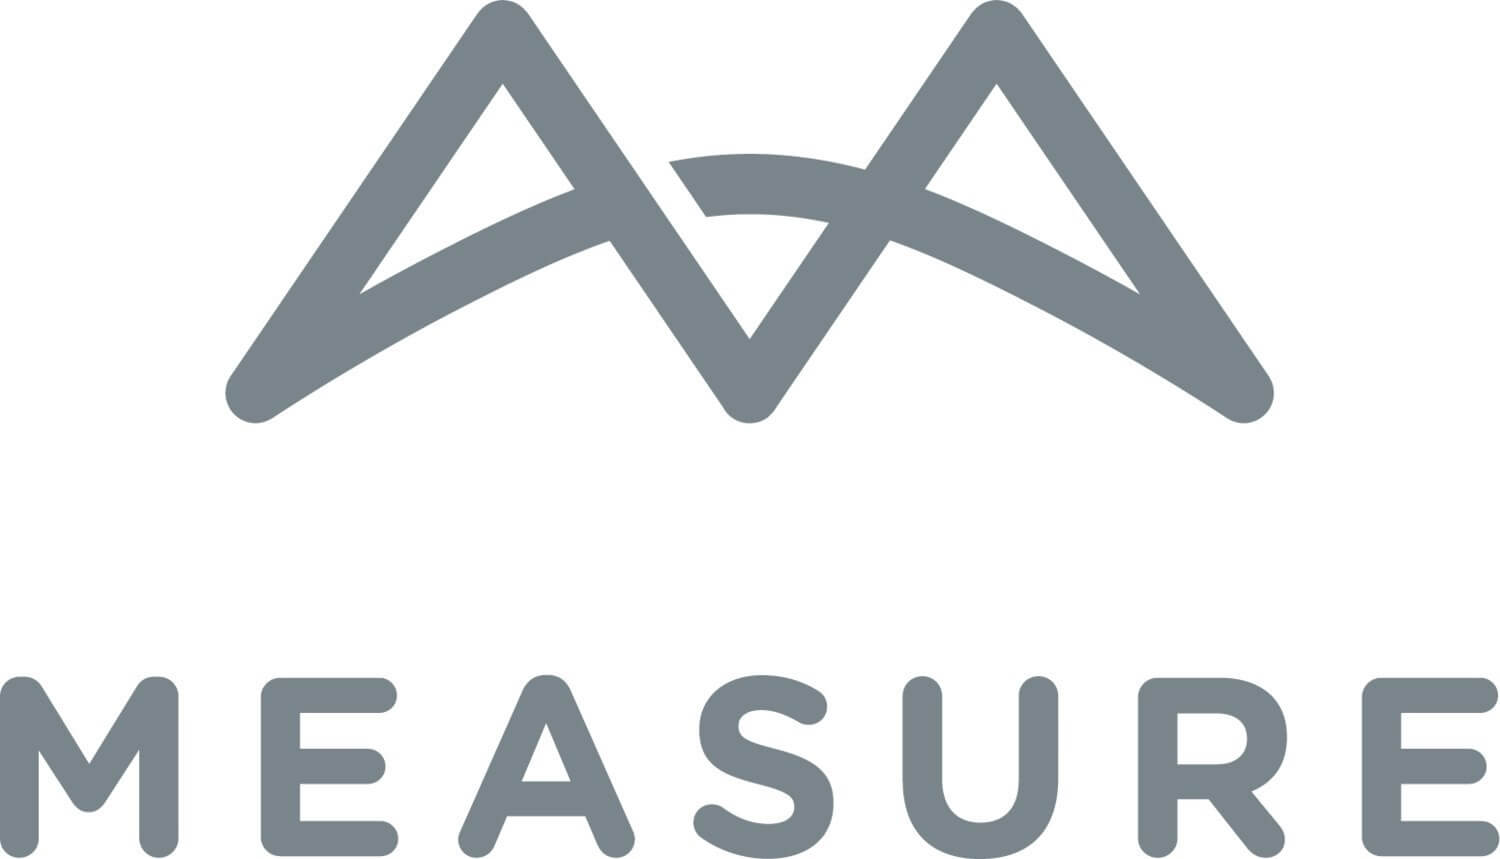 MEASURE Announces New Product Features to Support Autonomous Drone  Operations for Enterprise Customers - sUAS News - The Business of Drones